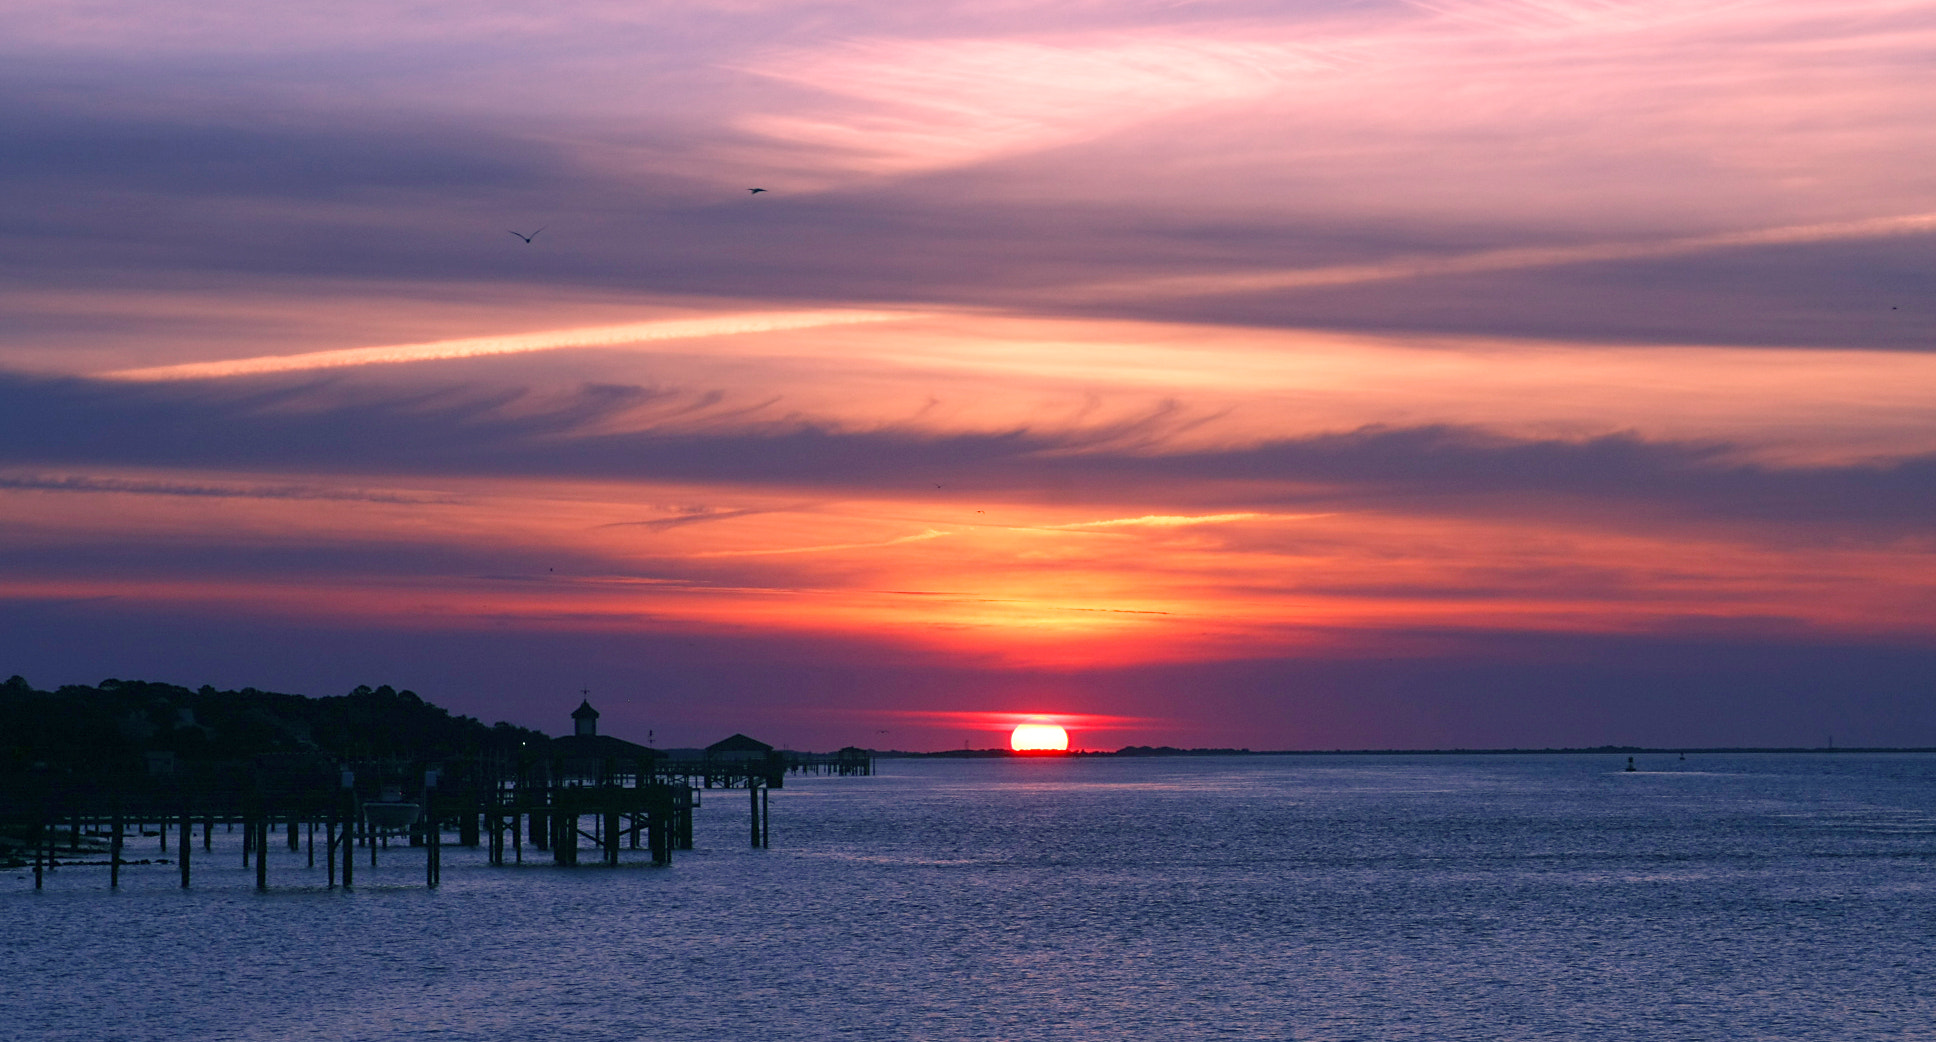 Photograph SOUTHPORT SUNRISE by DPImage Capturing on 500px